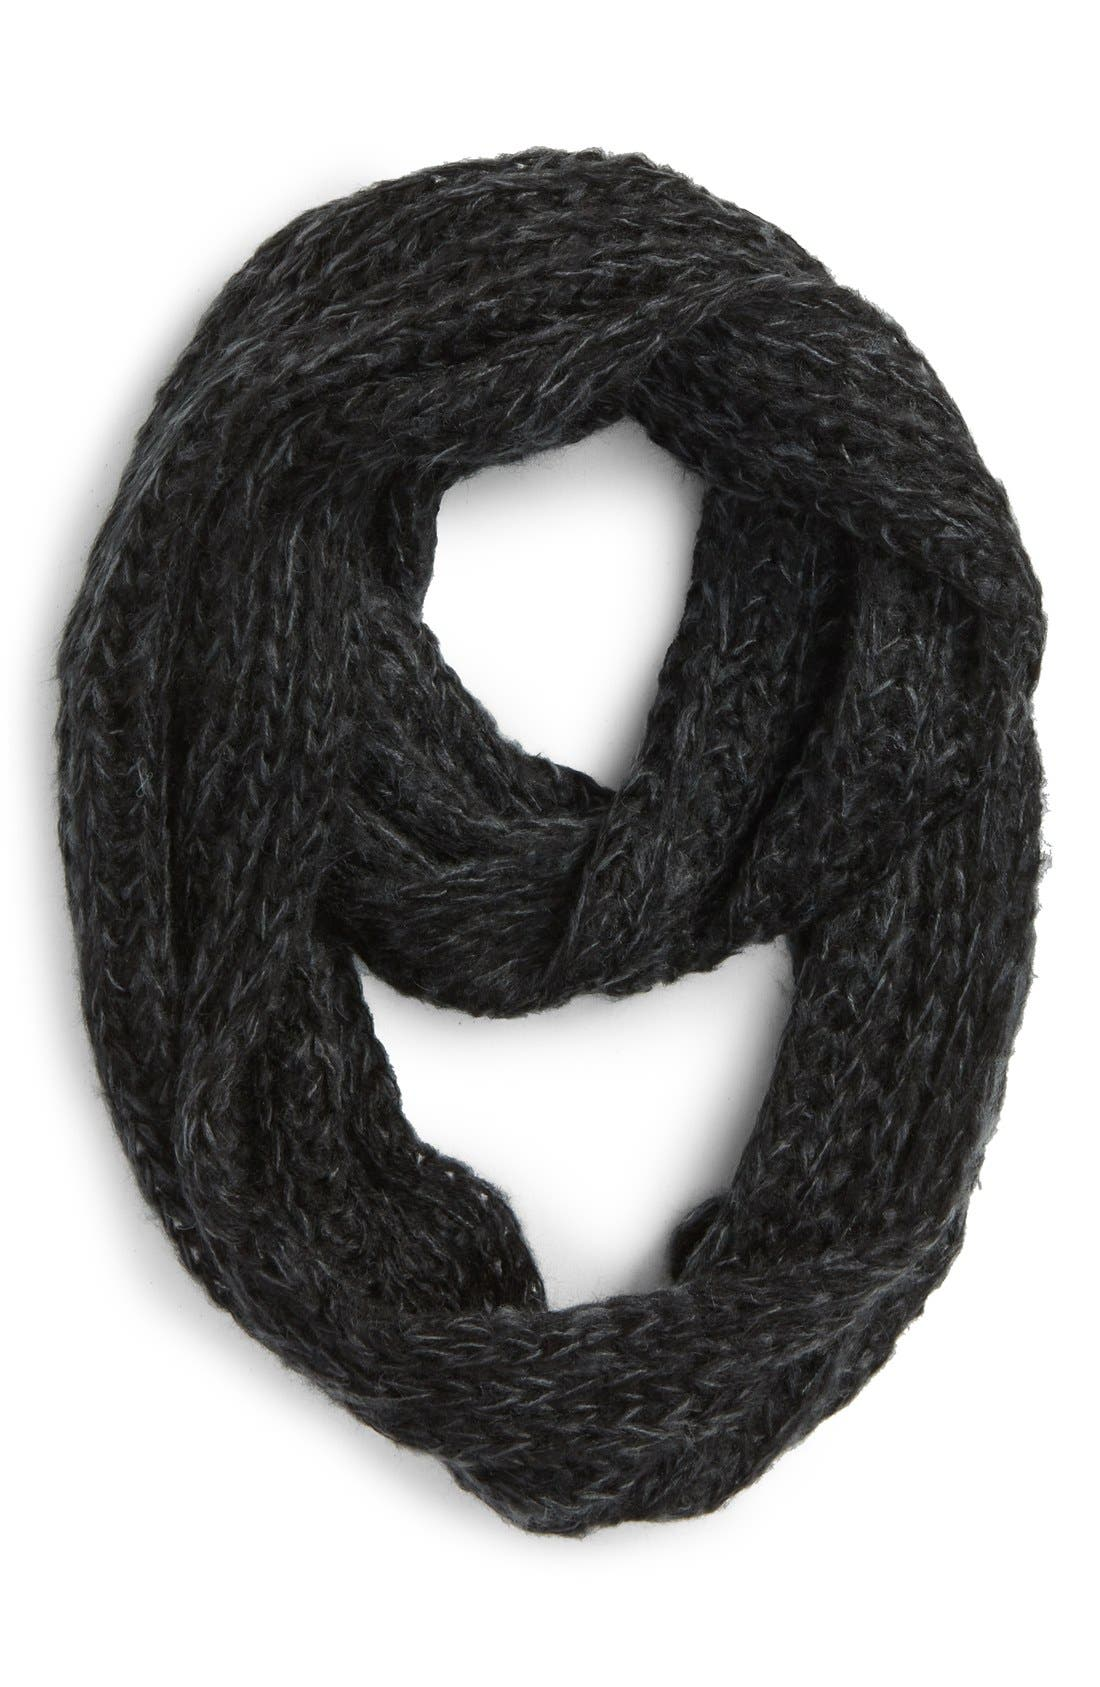 Main Image - BCBGeneration 'Scribble Loop' Knit Infinity Scarf